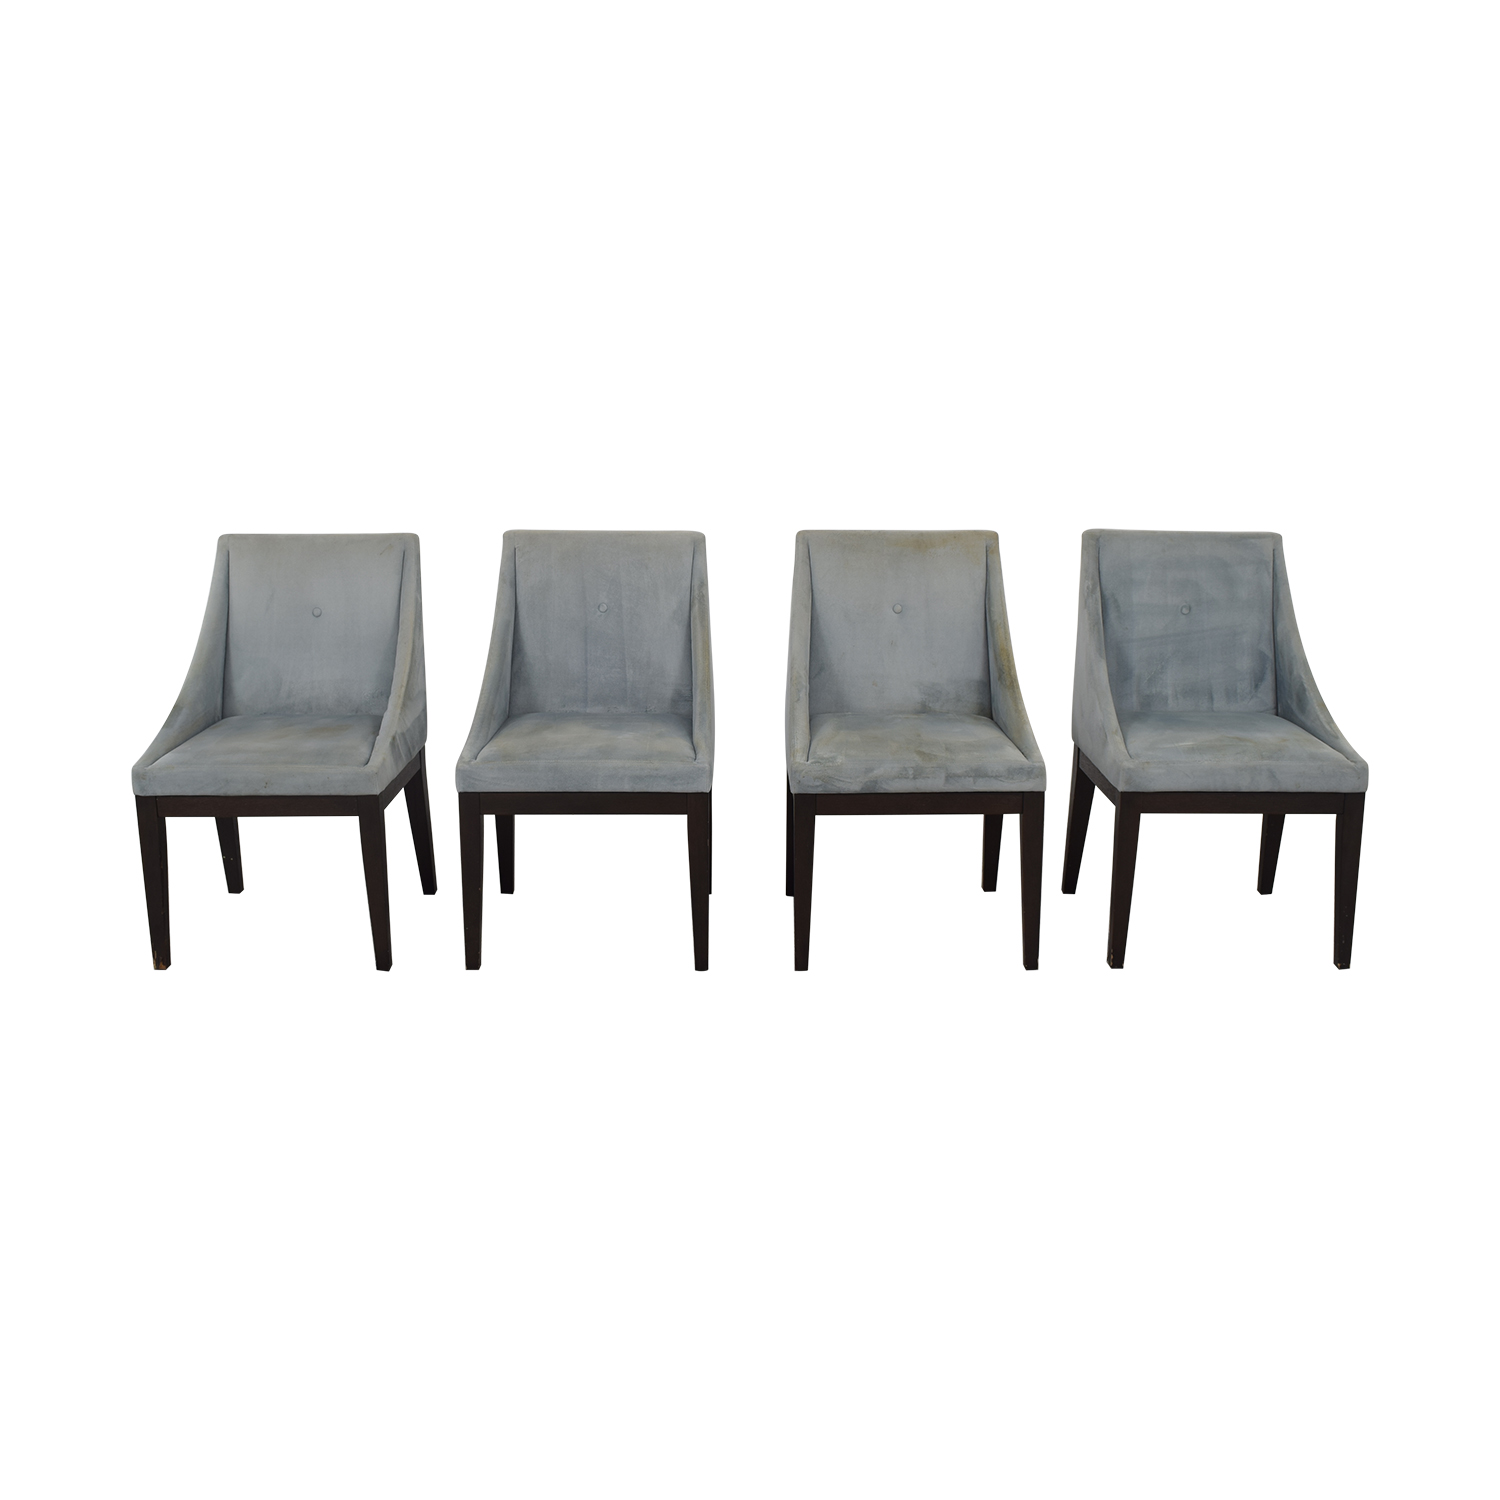 West Elm West Elm Upholstered Dining Chairs Chairs